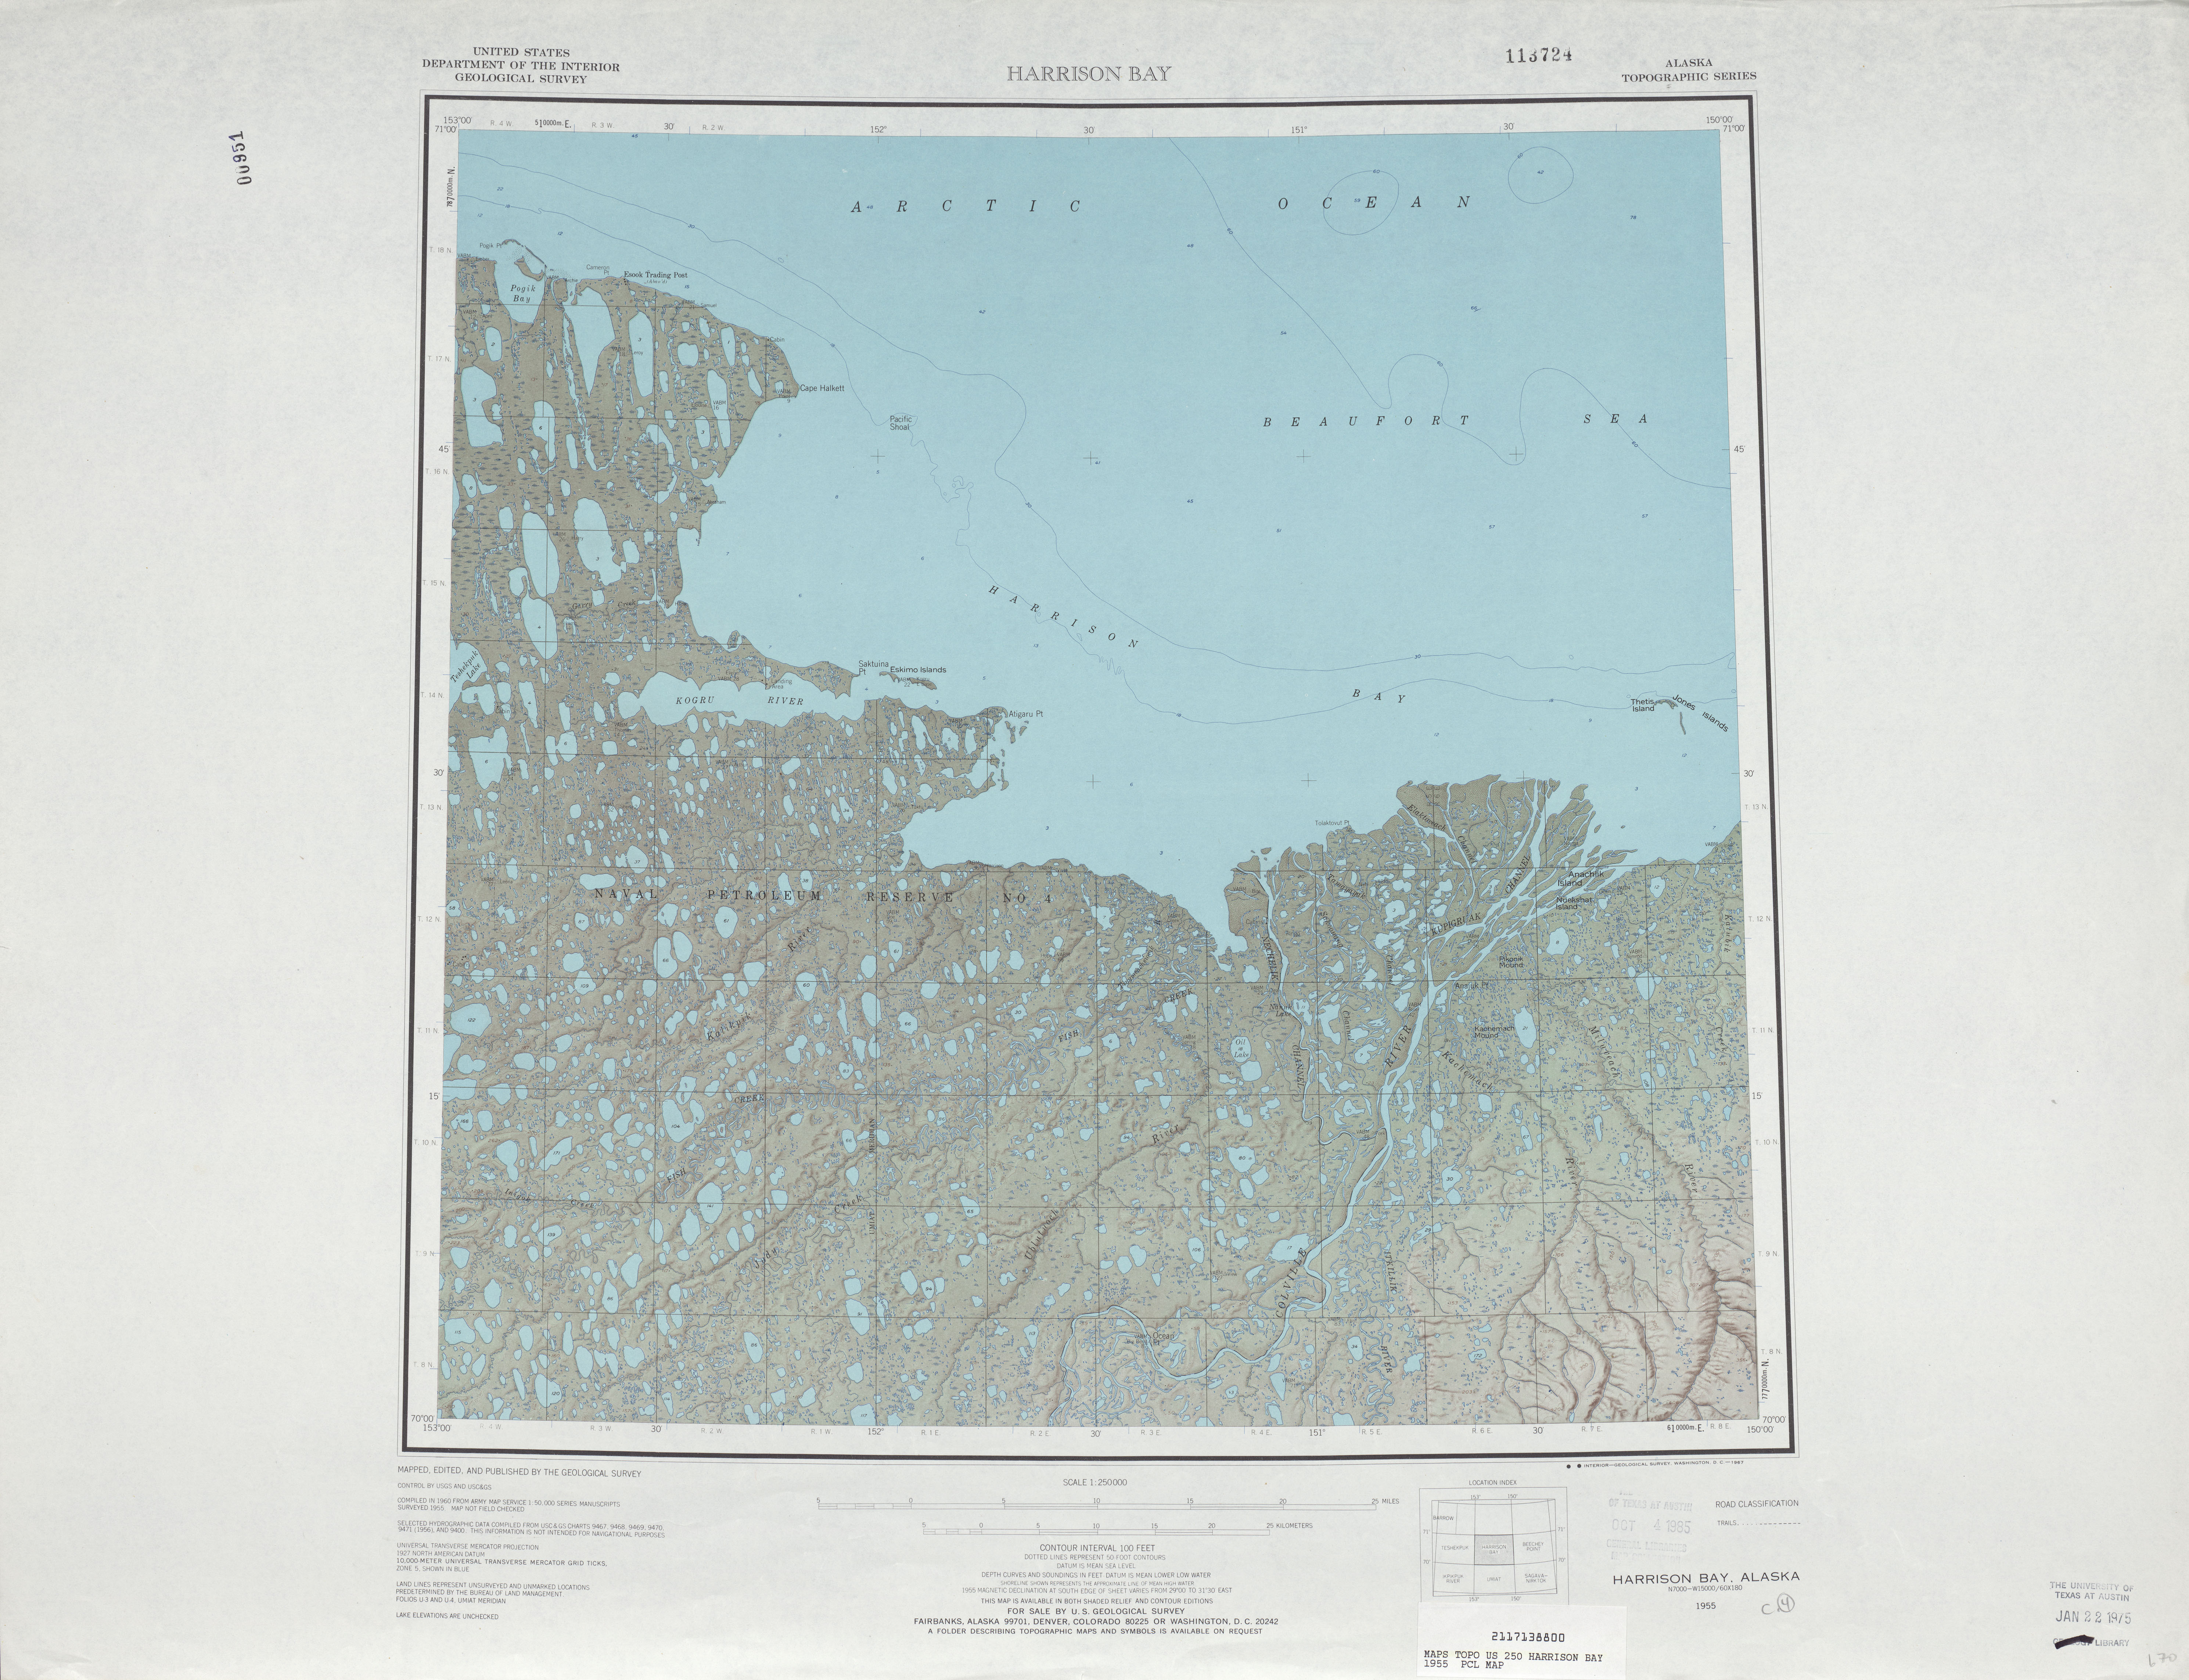 Harrison Bay Shaded Relief Map Sheet, United States 1955